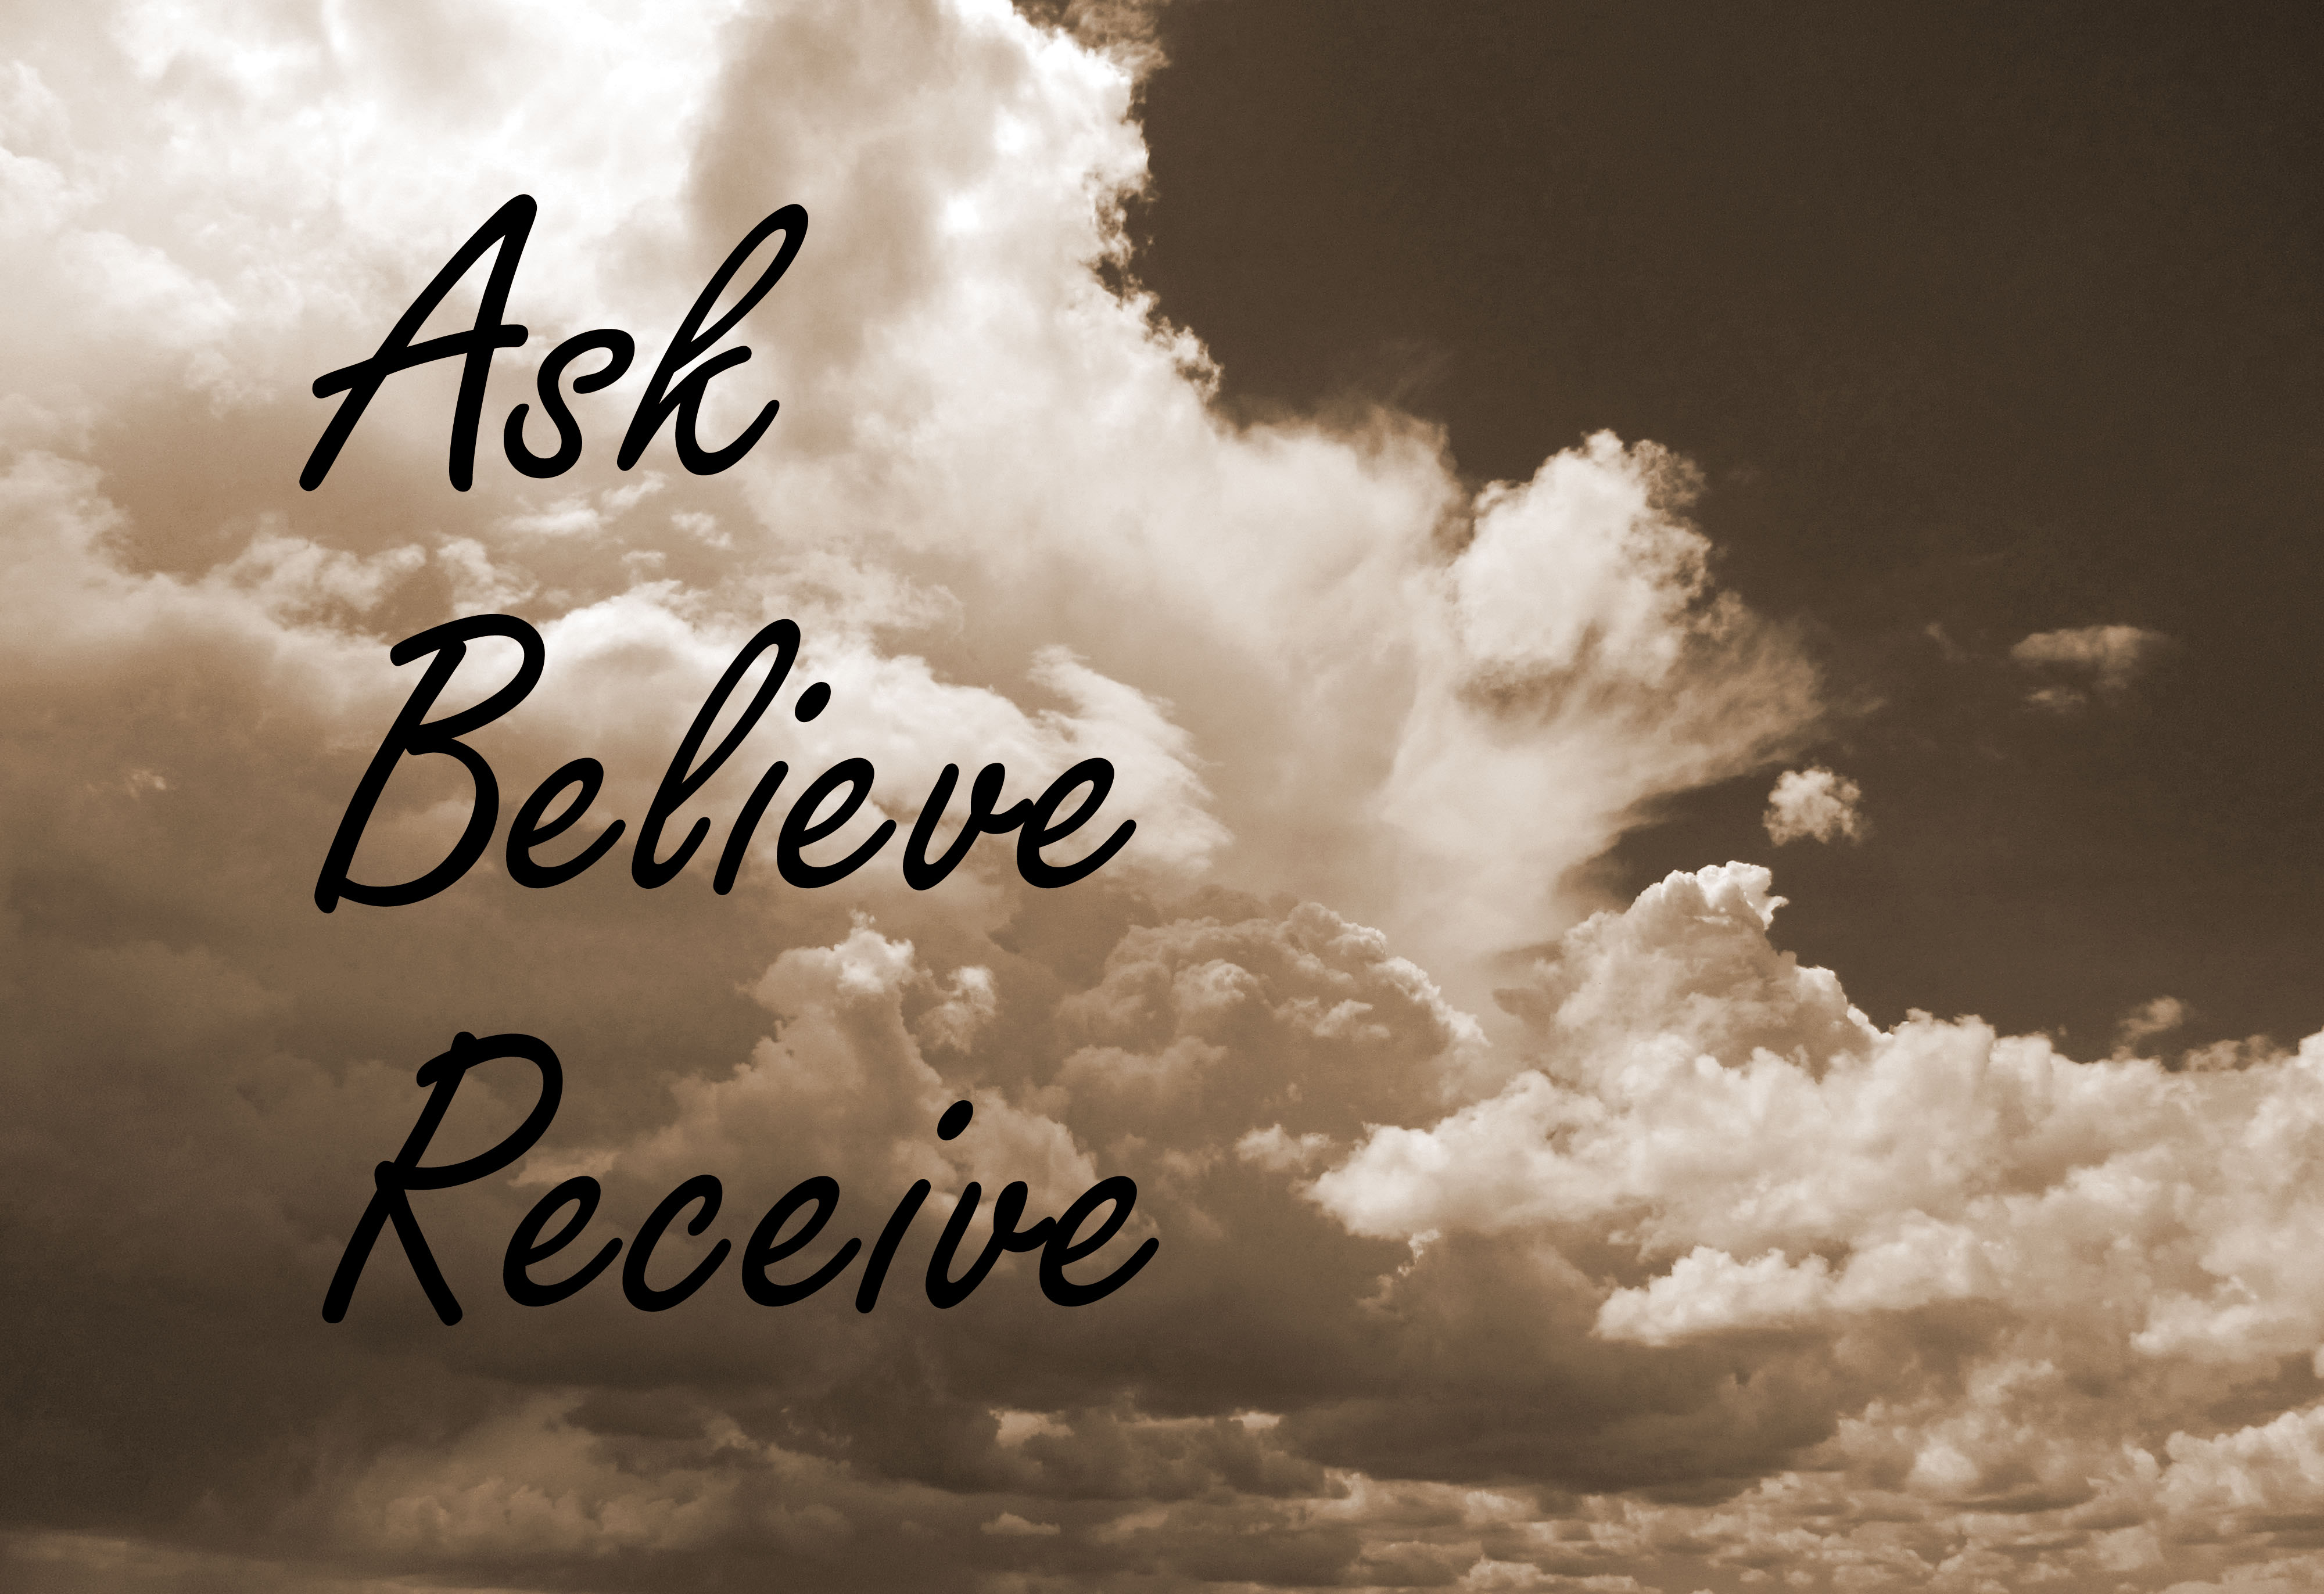 """""""Ask, Believe, Receive"""" written on sepia photo of clouds"""